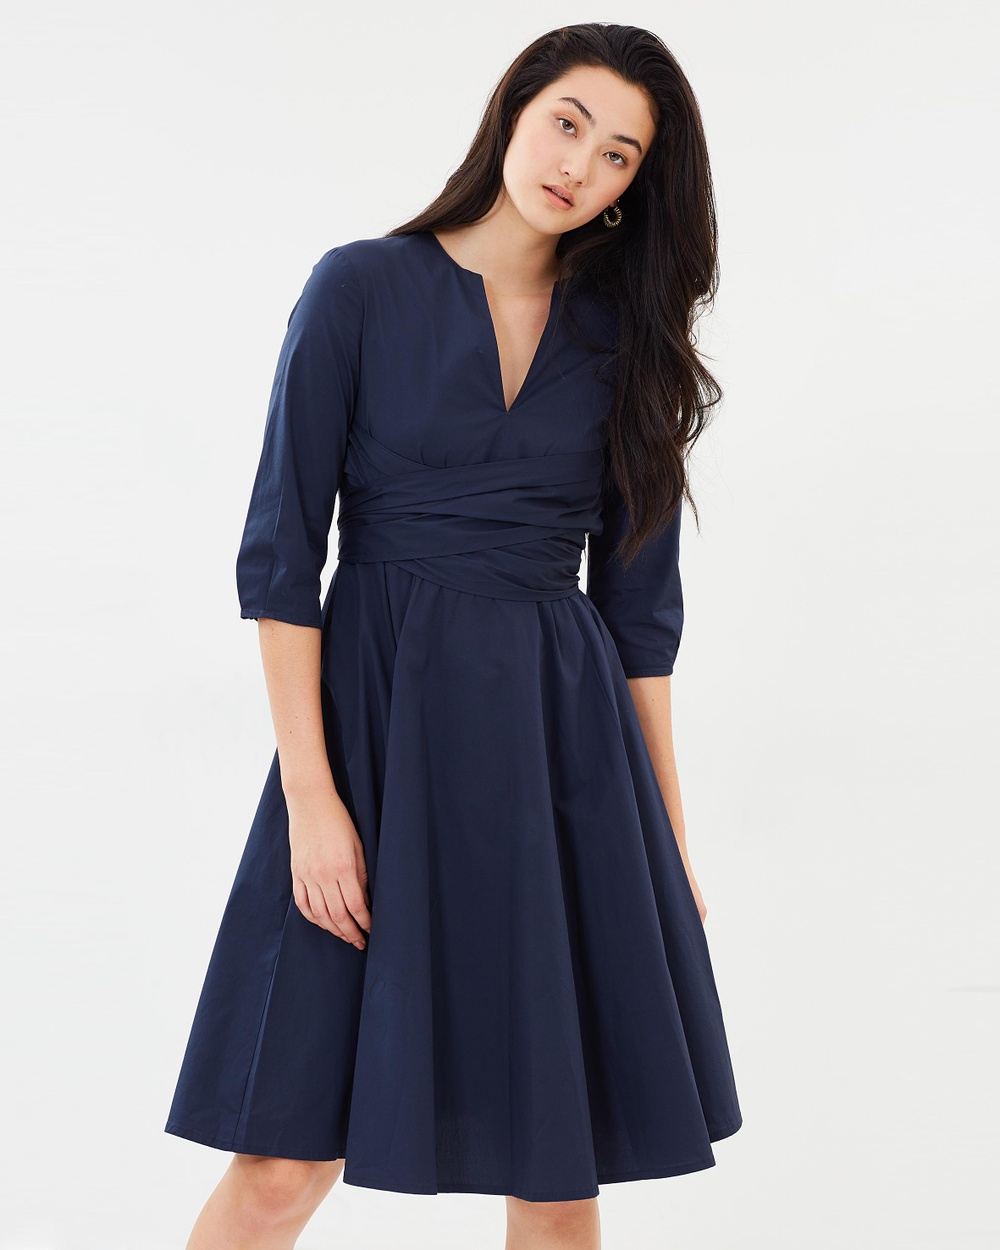 MAX & Co. Delicato Dress Dresses Dark Grey Delicato Dress